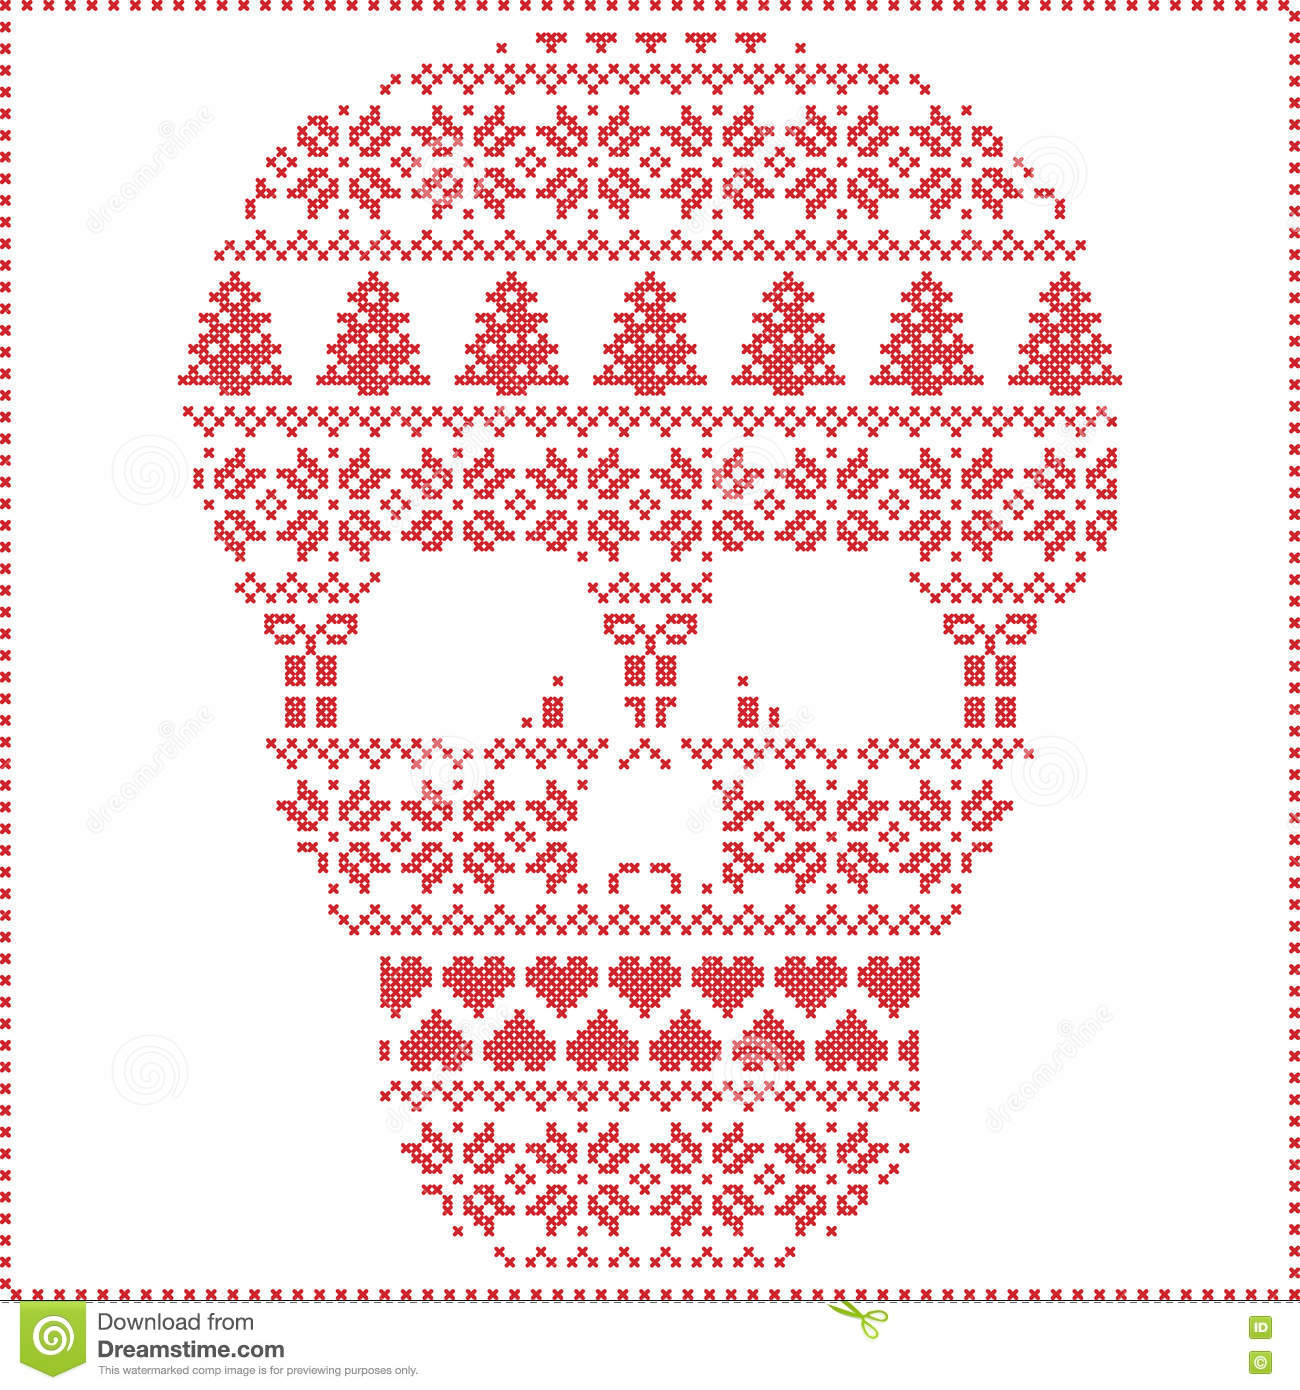 scandinavian nordic winter stitching knitting christmas pattern in in sugar skull shape including snowflakes hearts - Christmas Sugar Skull